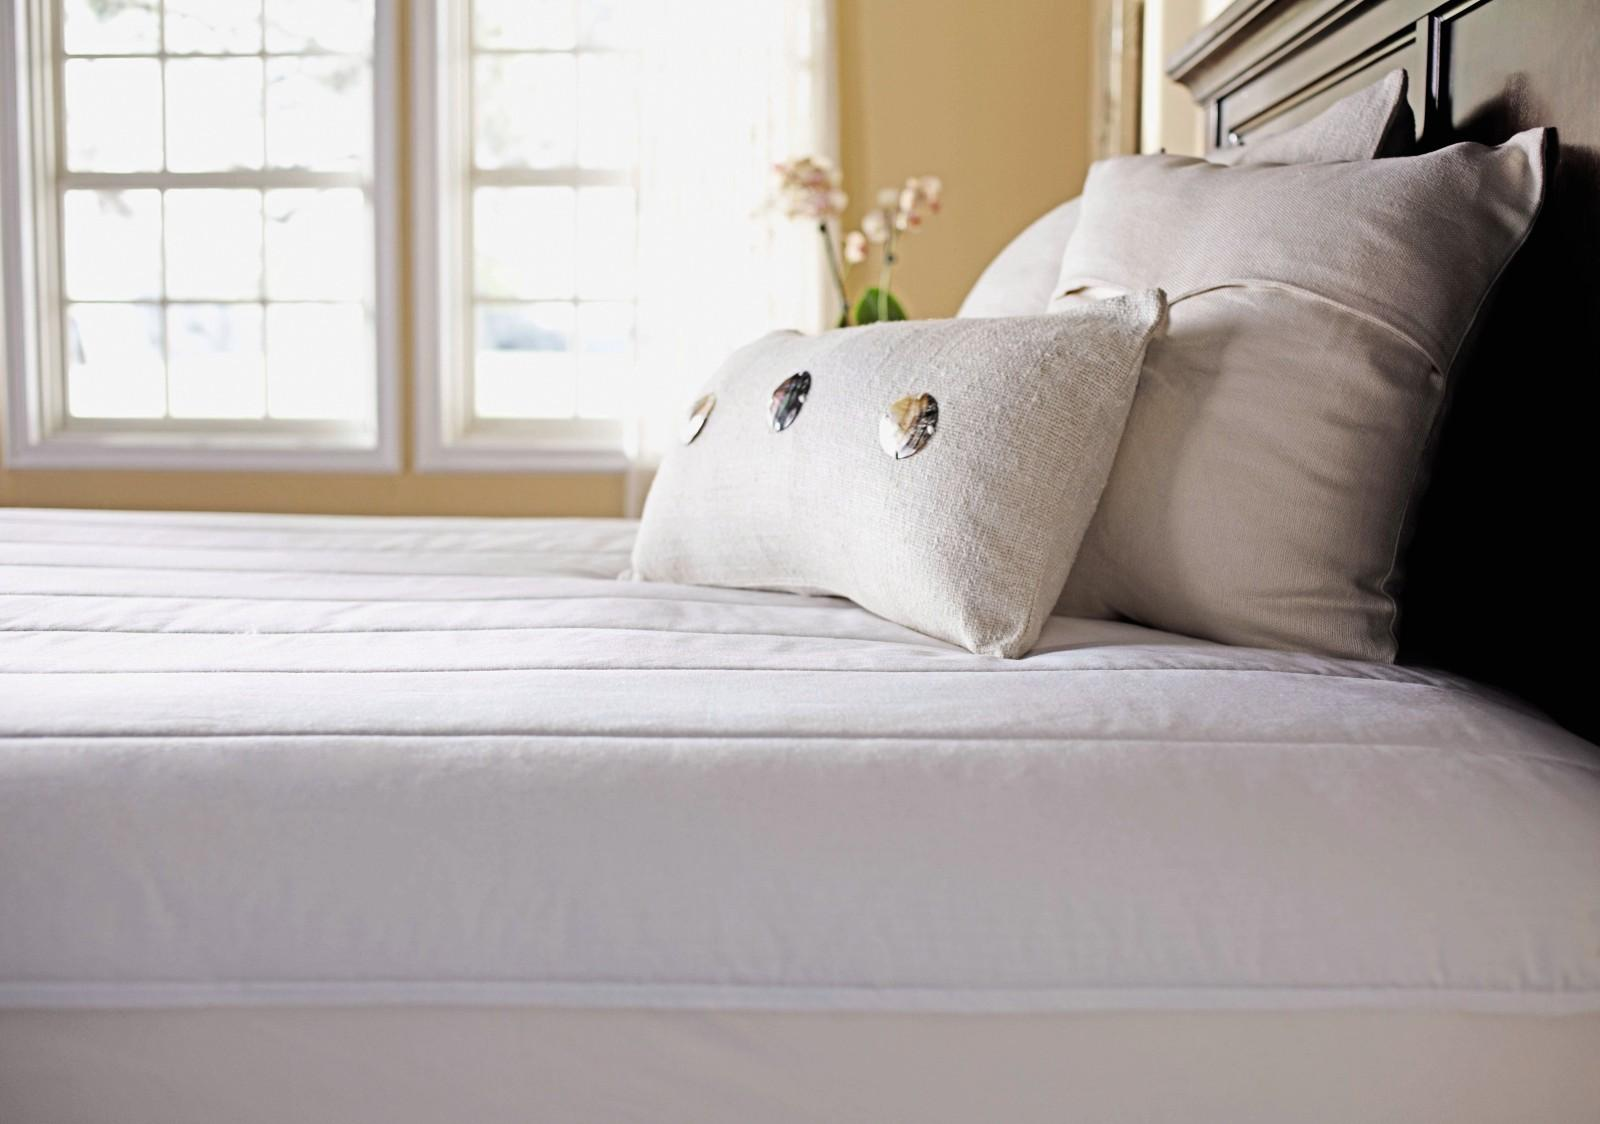 Heated Mattress Pad Reviews and buying guide by www.snoremagazine.com